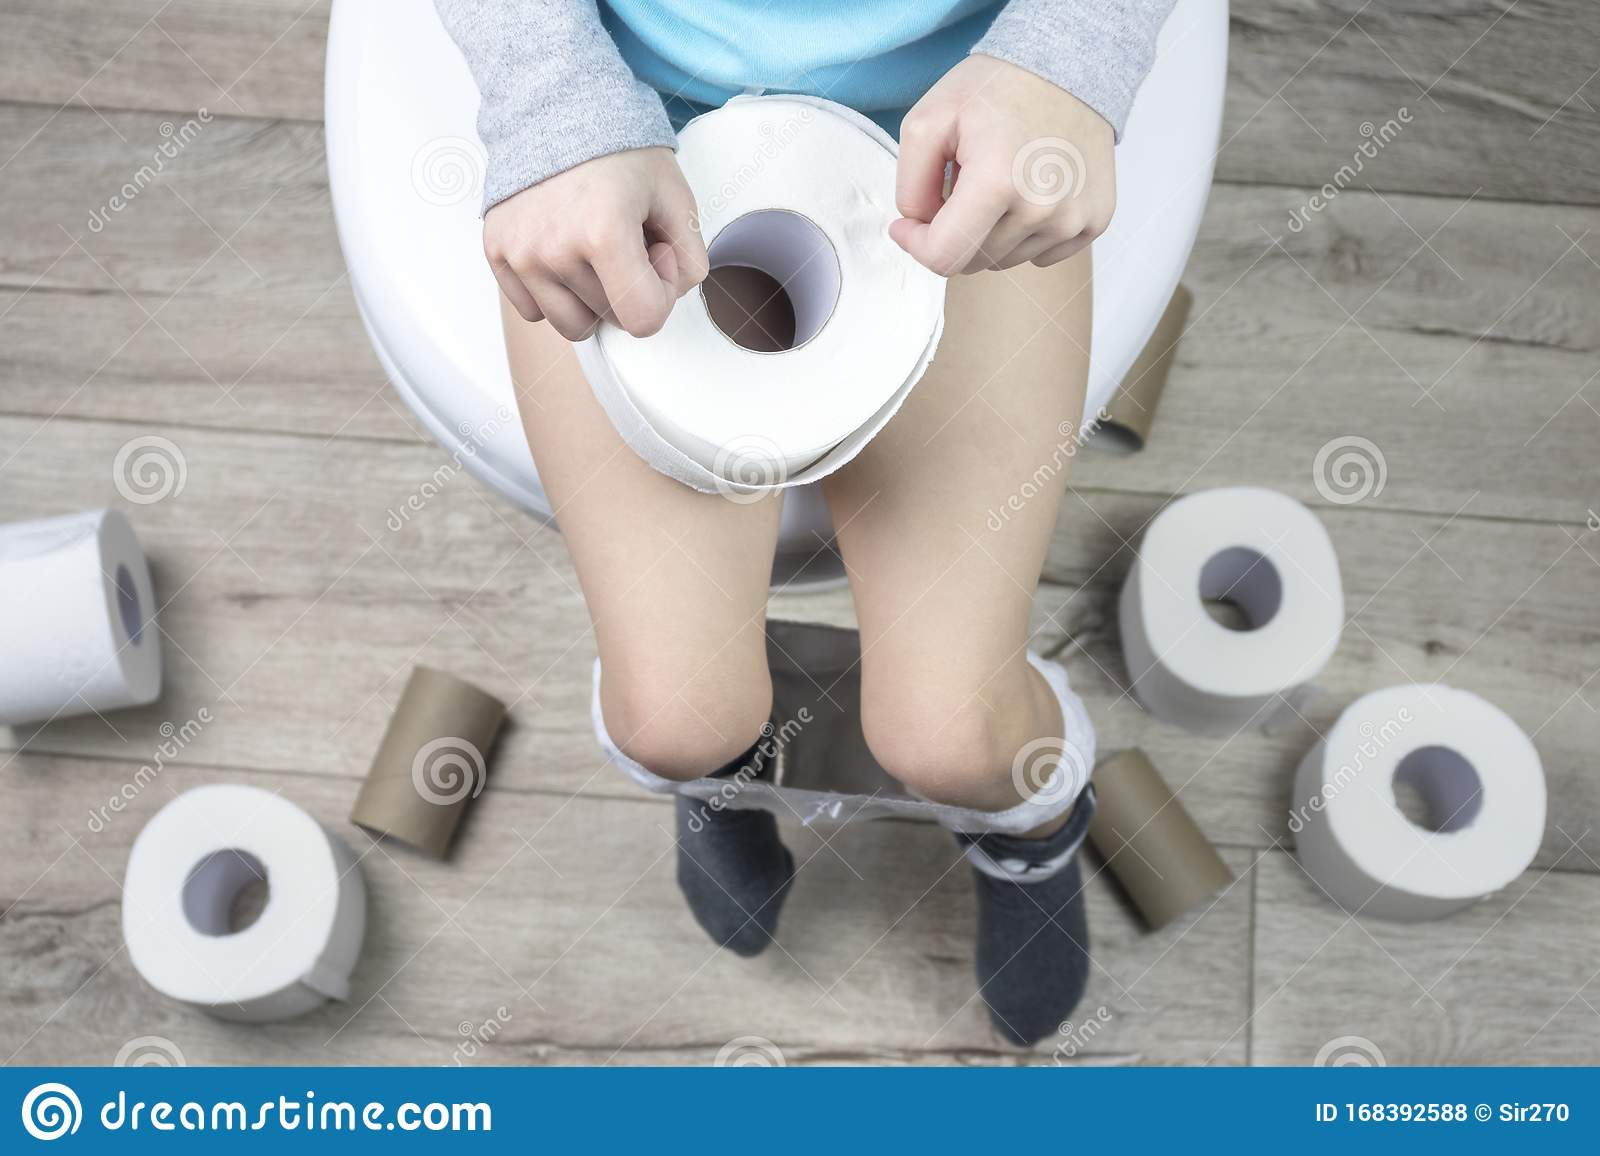 Young Boy Sitting On Toilet High-Res Stock Photo - Getty